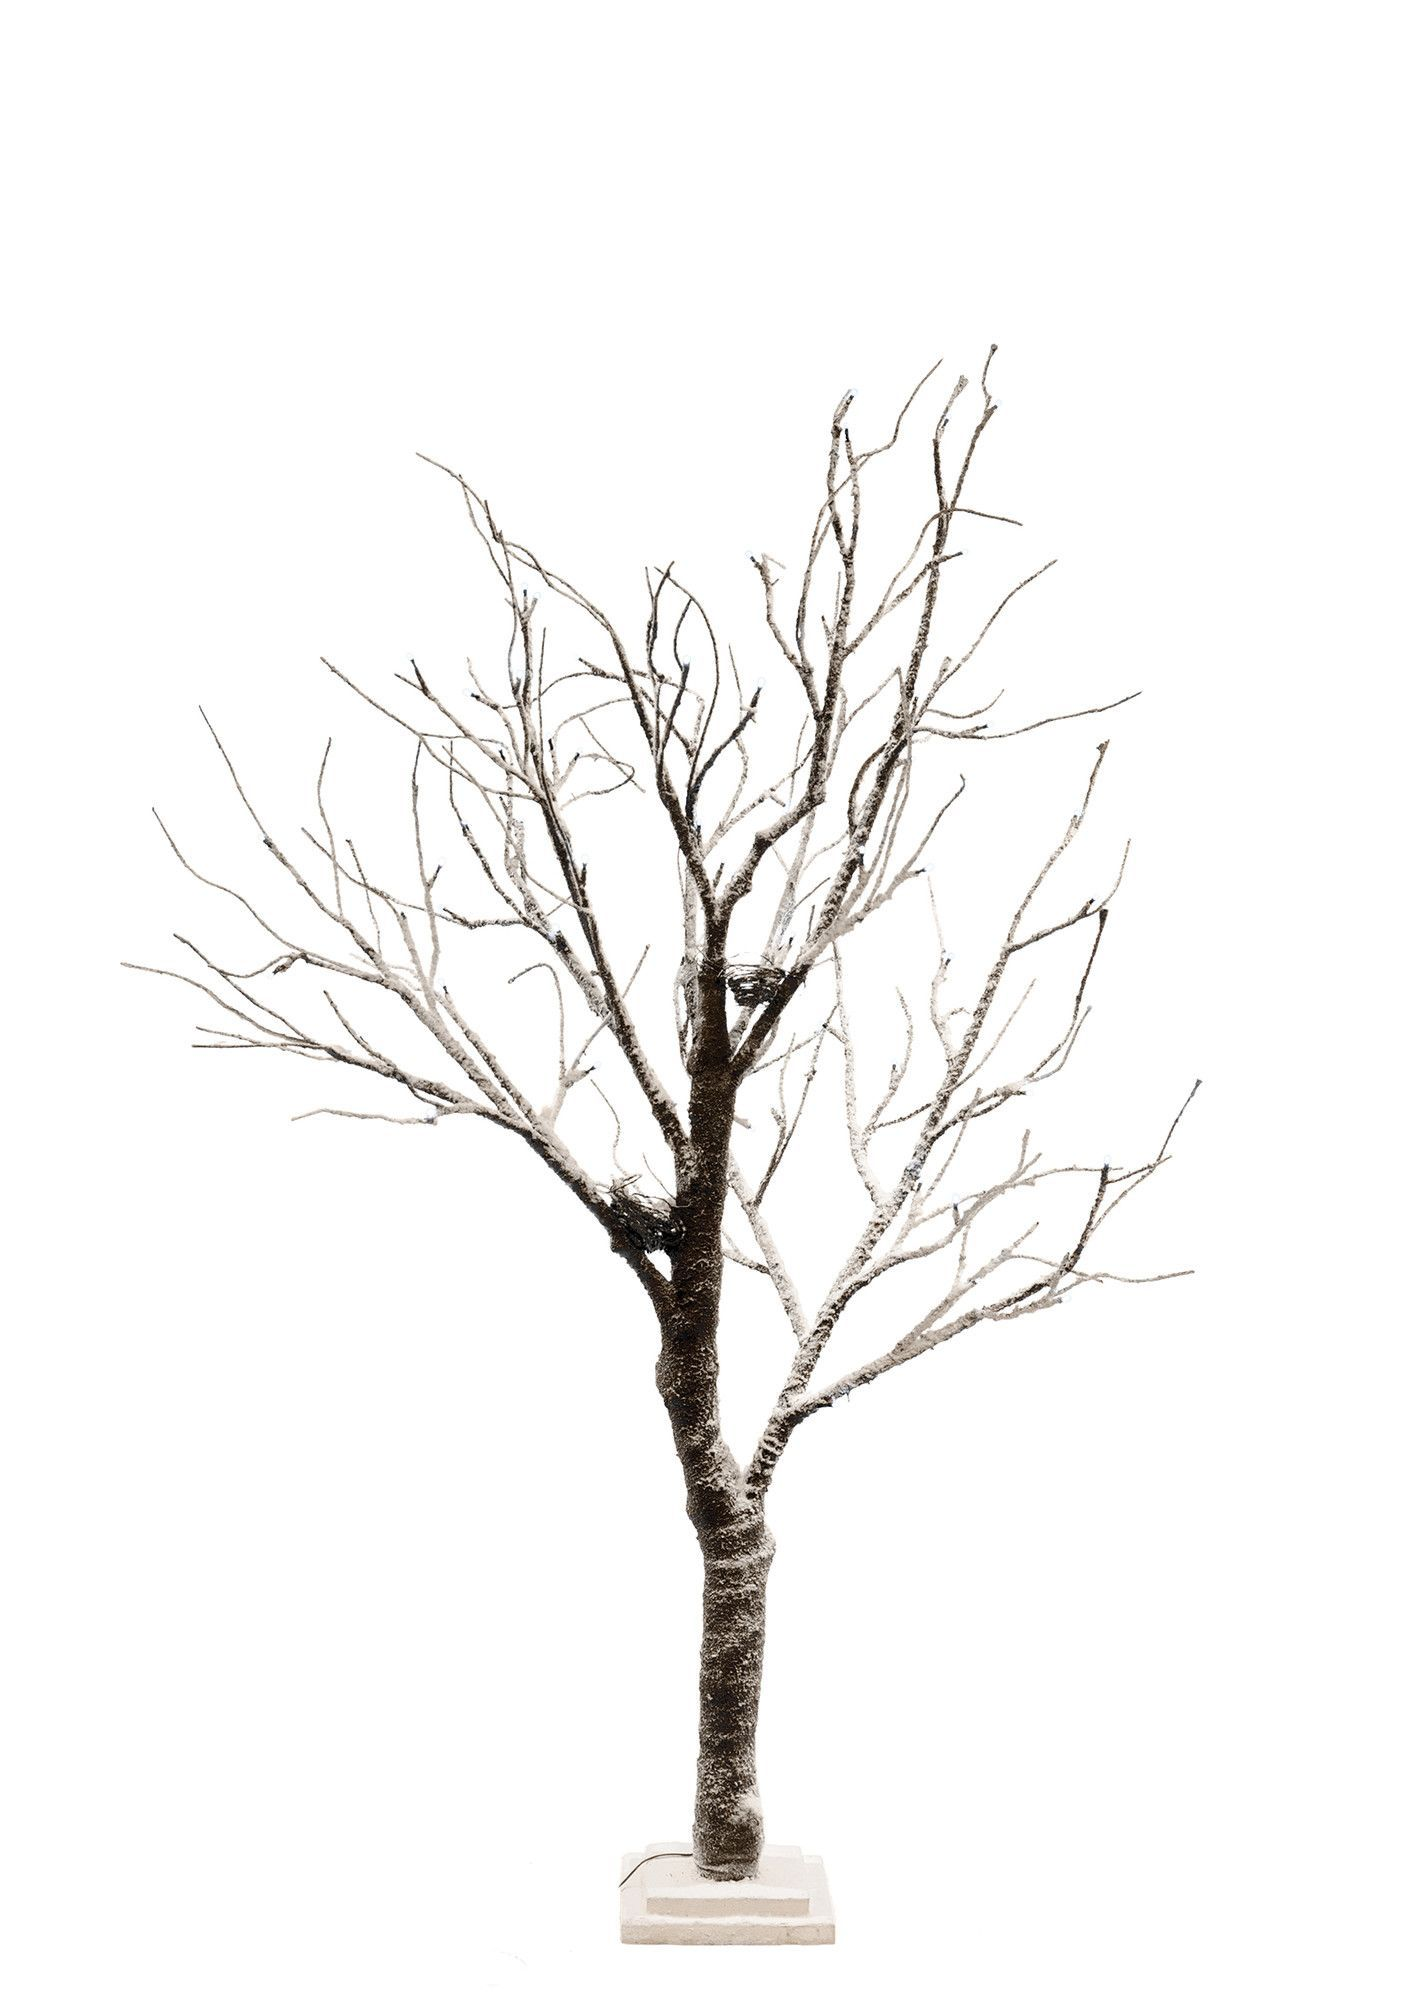 Dead Tree Png By Gd08 On Deviantart Tree Photoshop Dry Tree Tree Textures